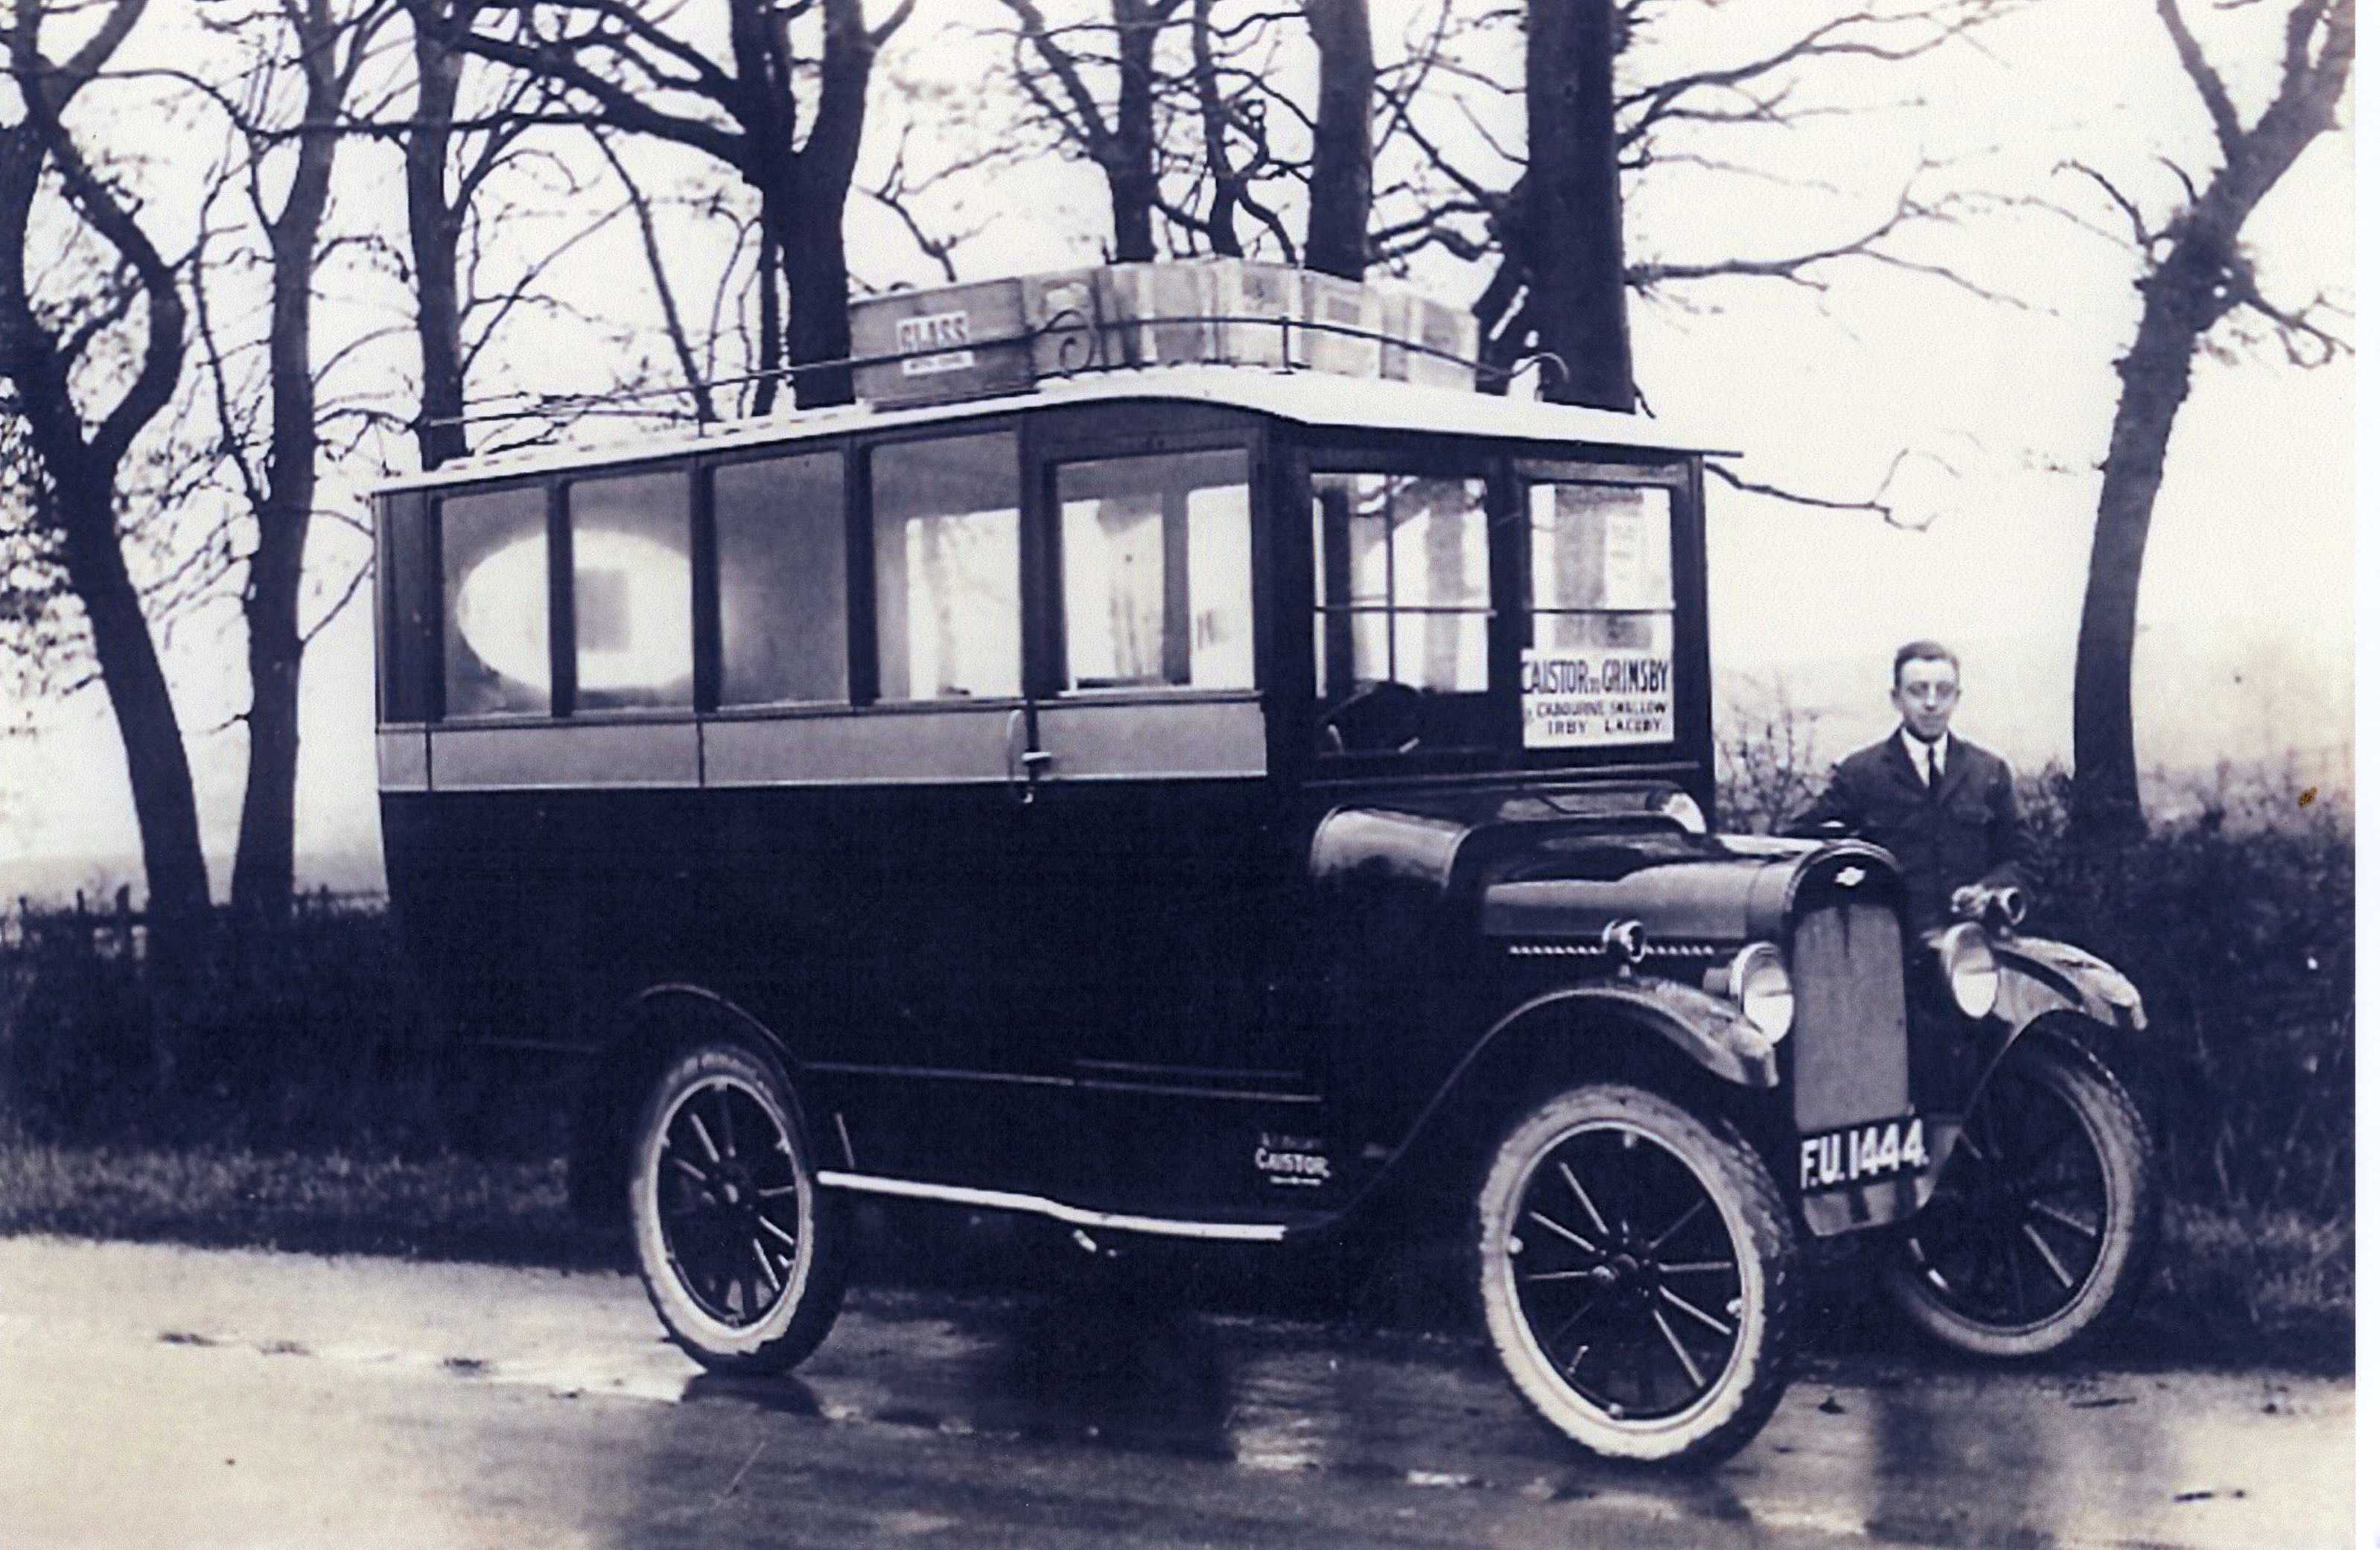 1st bus mr brown poss 1937115.jpg